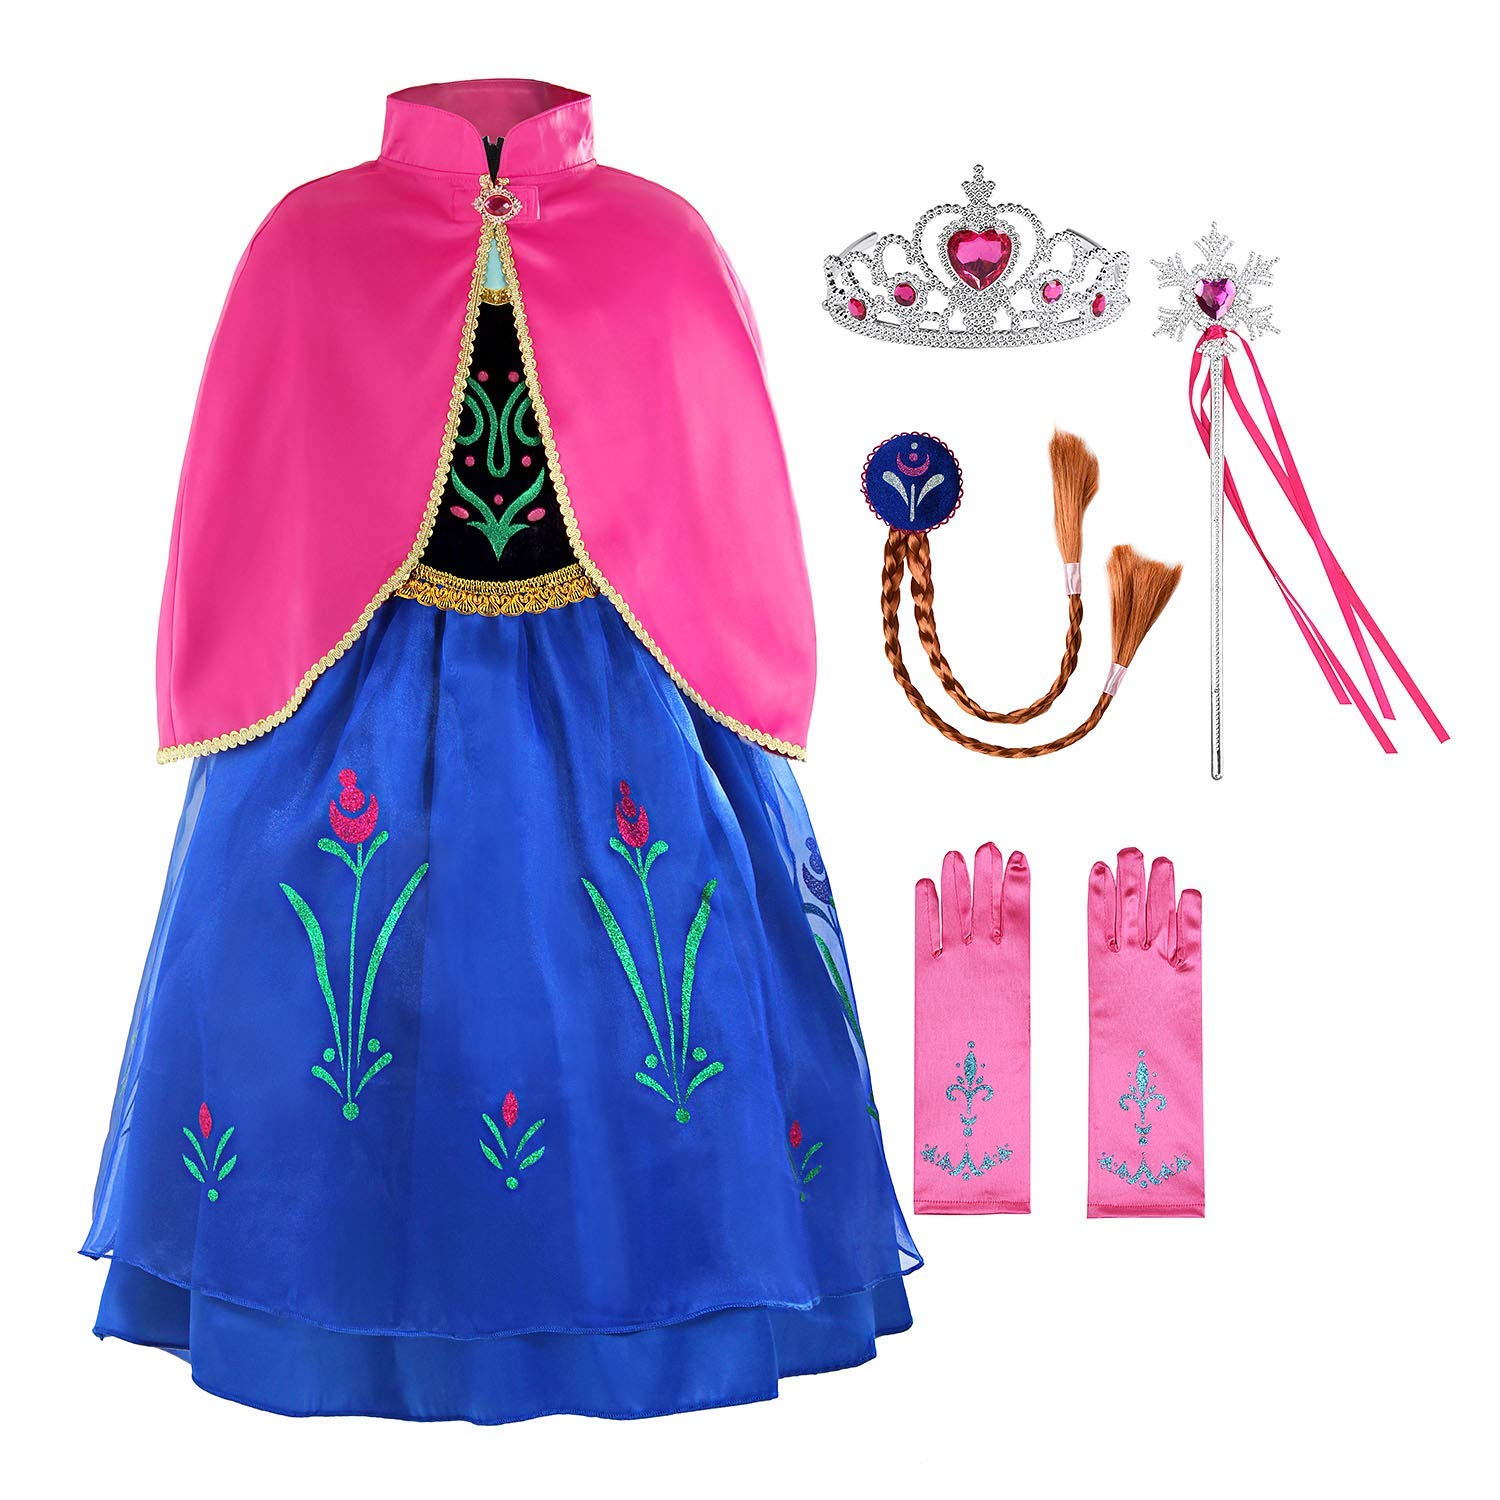 Padete Little Girls Anna Princess Dress Elsa Snow Party Queen Halloween Costume (7 Years, Navy Blue with Accessories)